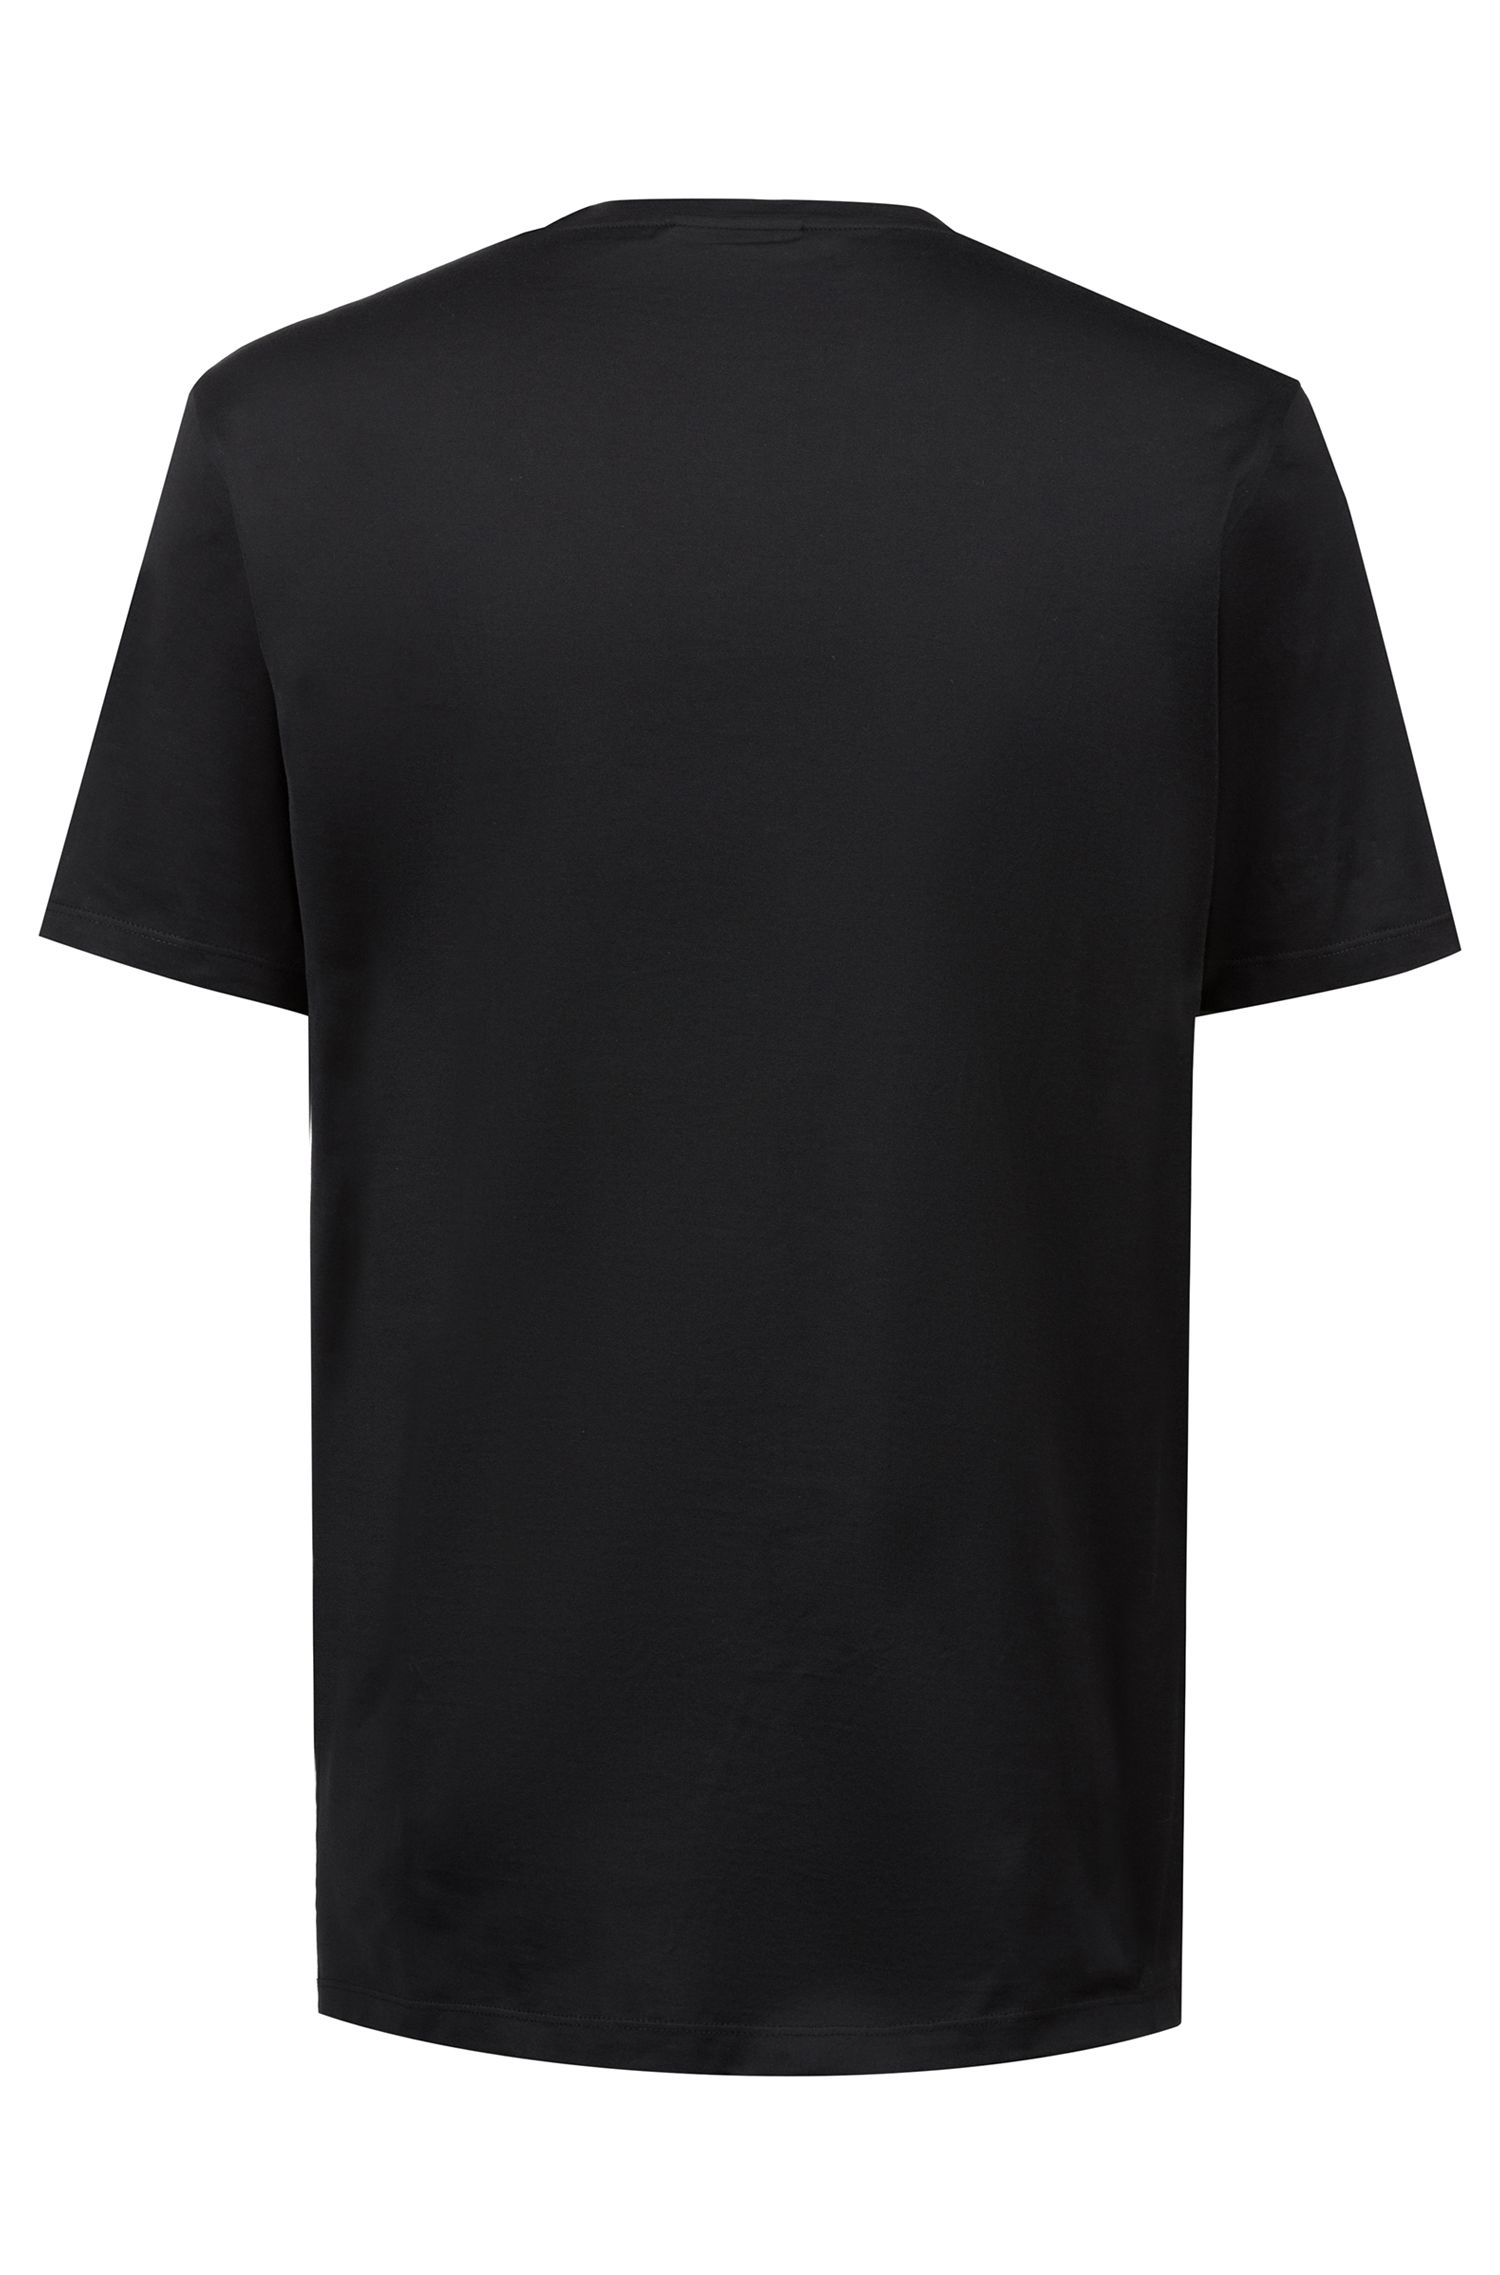 Crew-neck T-shirt in cotton with reverse-logo print, Black